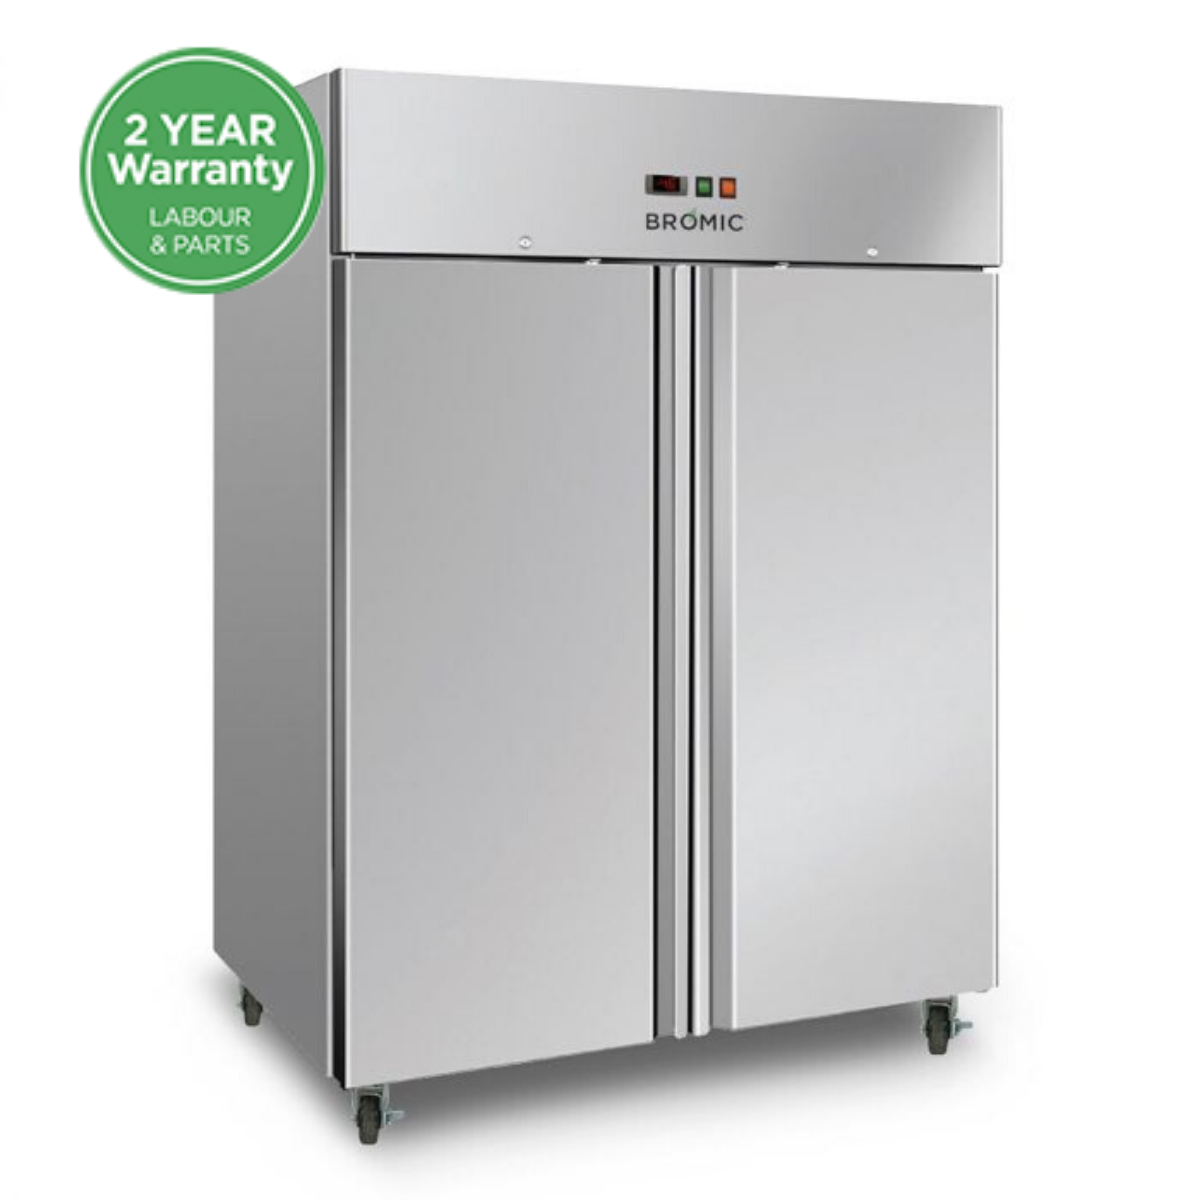 Bromic Gastronorm Storage Freezer 1300L double door 1480w x830d x 2010h mm